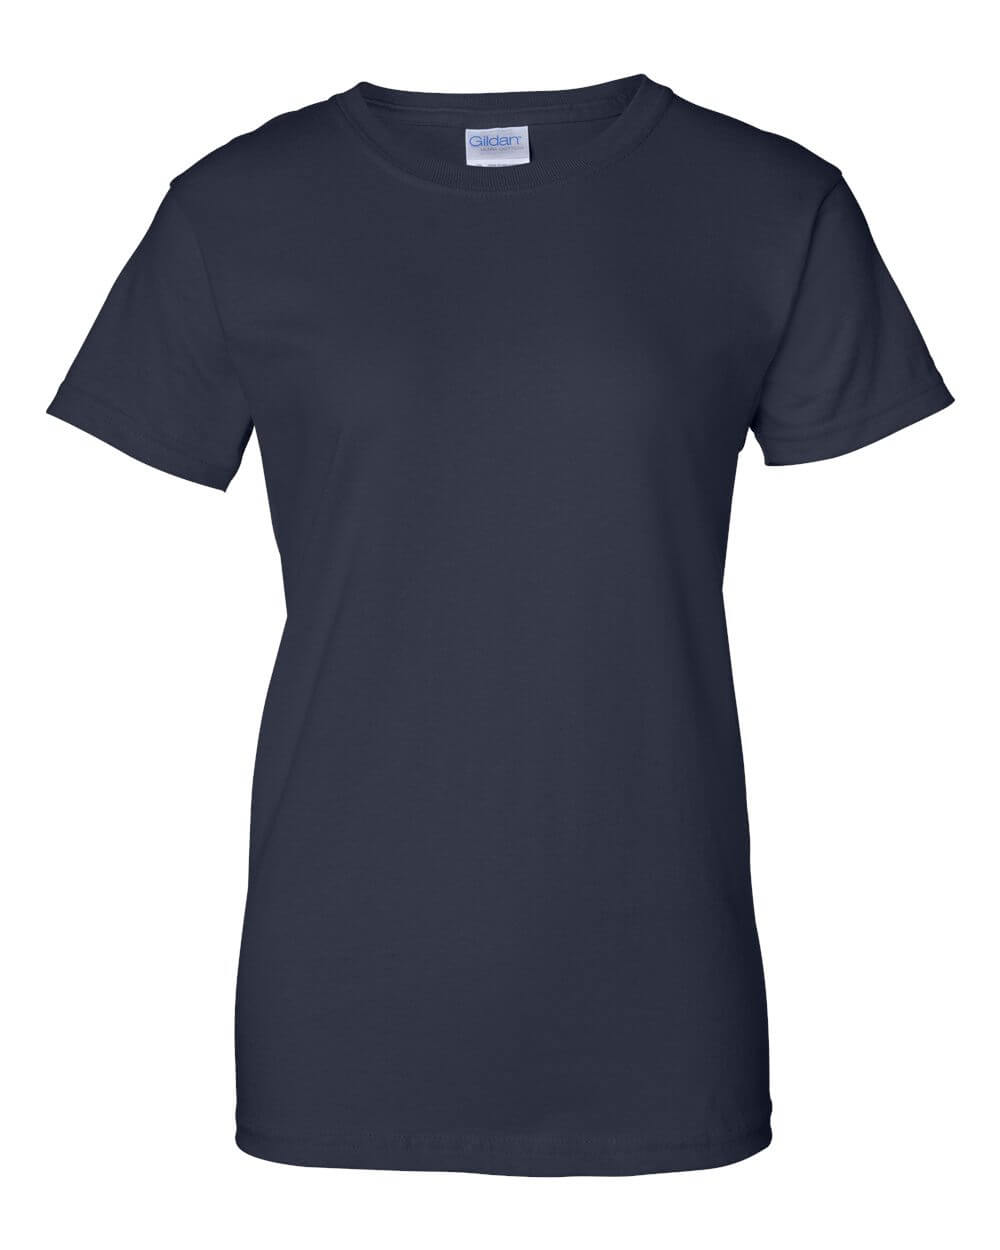 Gildan_2000L_Navy Blue Custom T Shirts